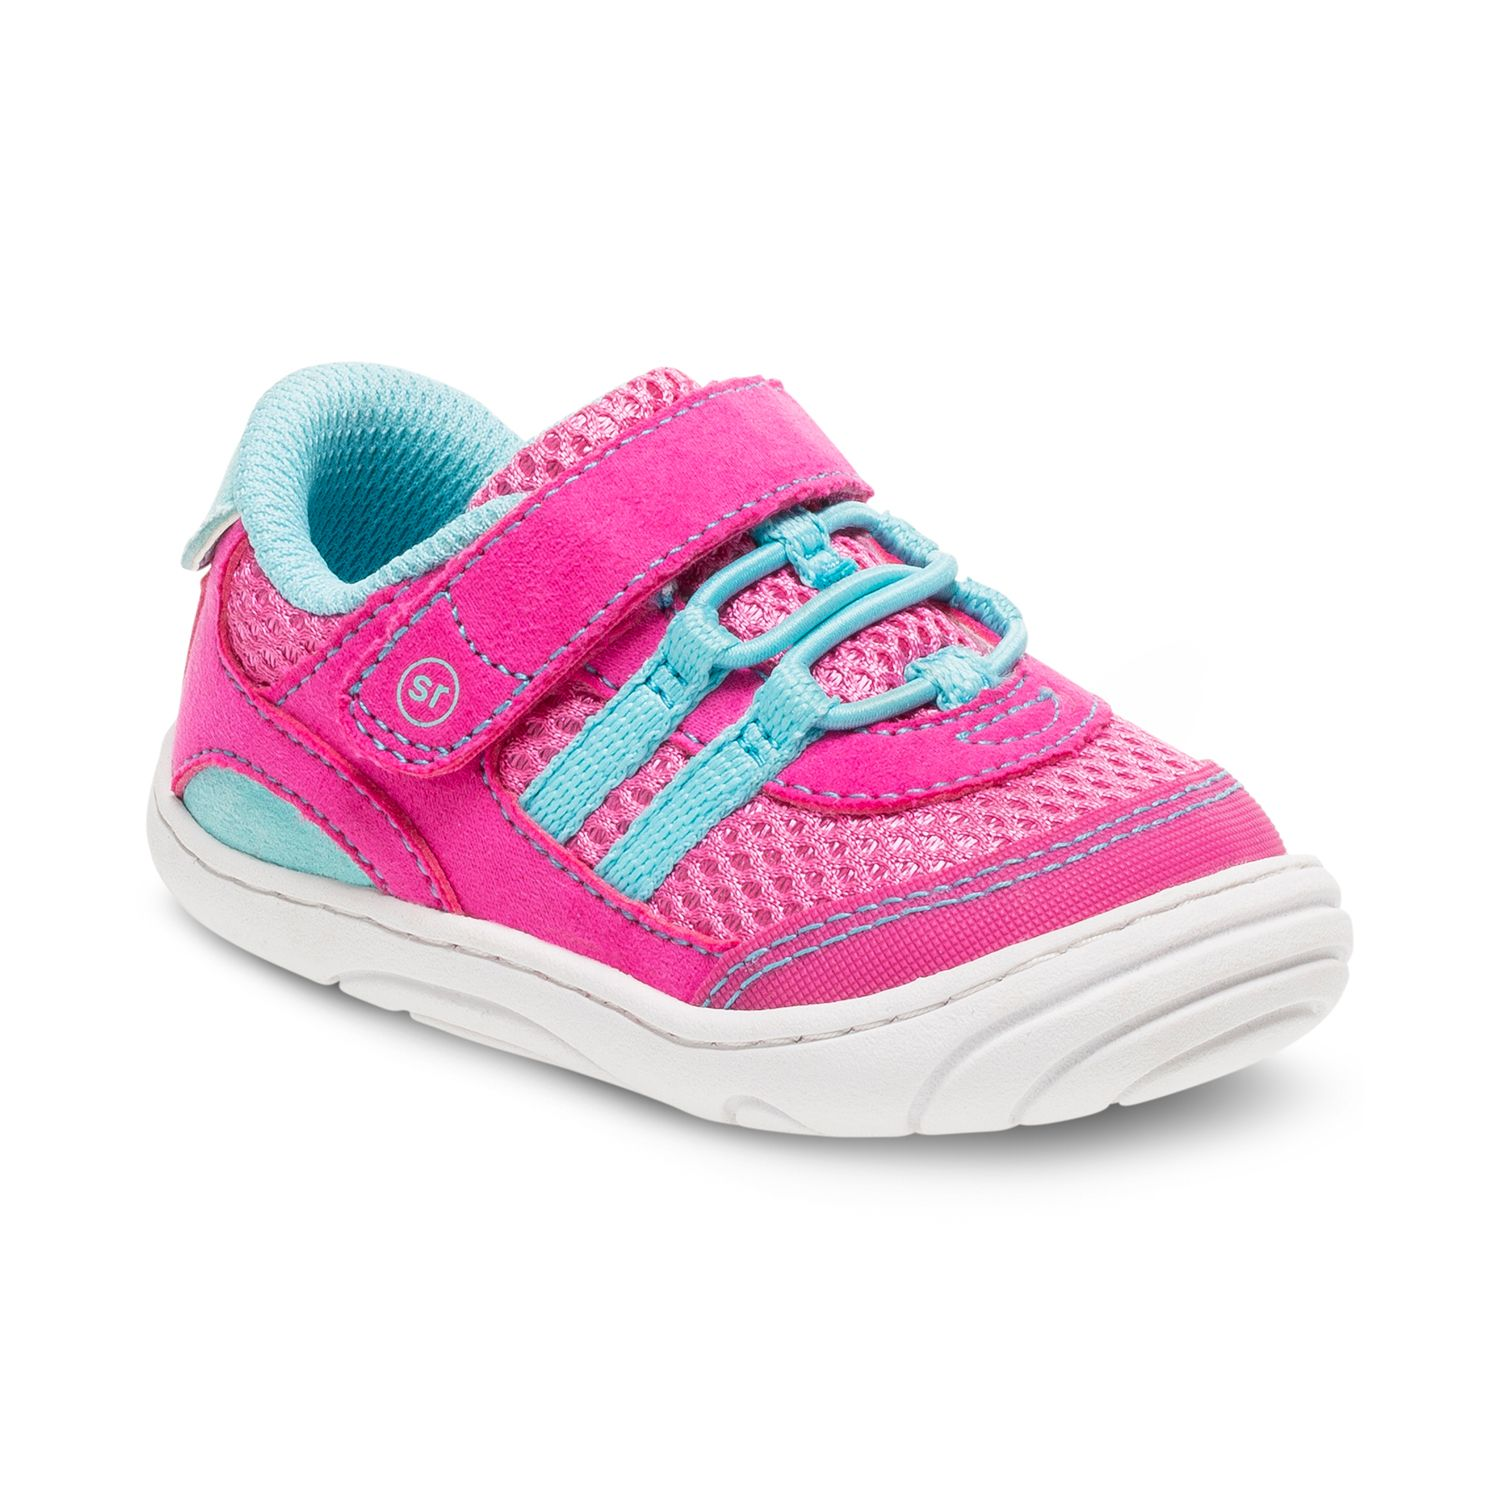 photo relating to Stride Rite Printable Coupon called Stride Ceremony Solana Little one Females Footwear